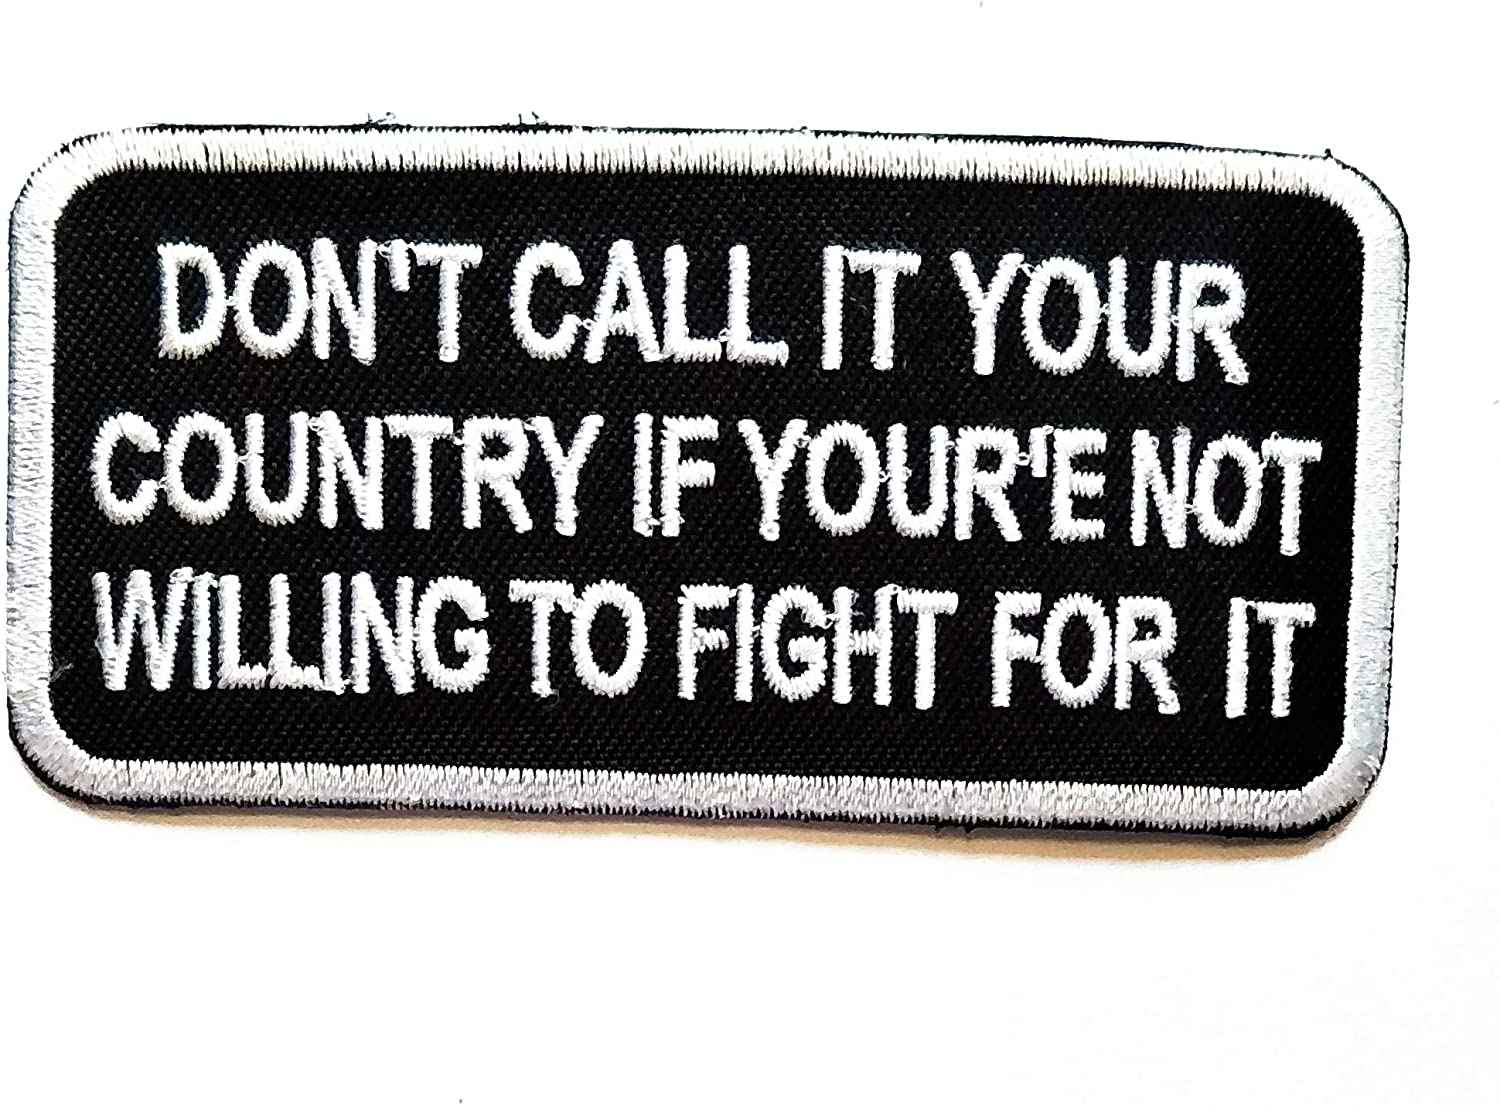 Nipitshop Patches Dont Call it Your Country if Youre not willng to Fight for it Funny Words Patch Embroidered Iron On Patch for Clothes Backpacks T-Shirt Jeans Skirt Vests Scarf Hat Bag